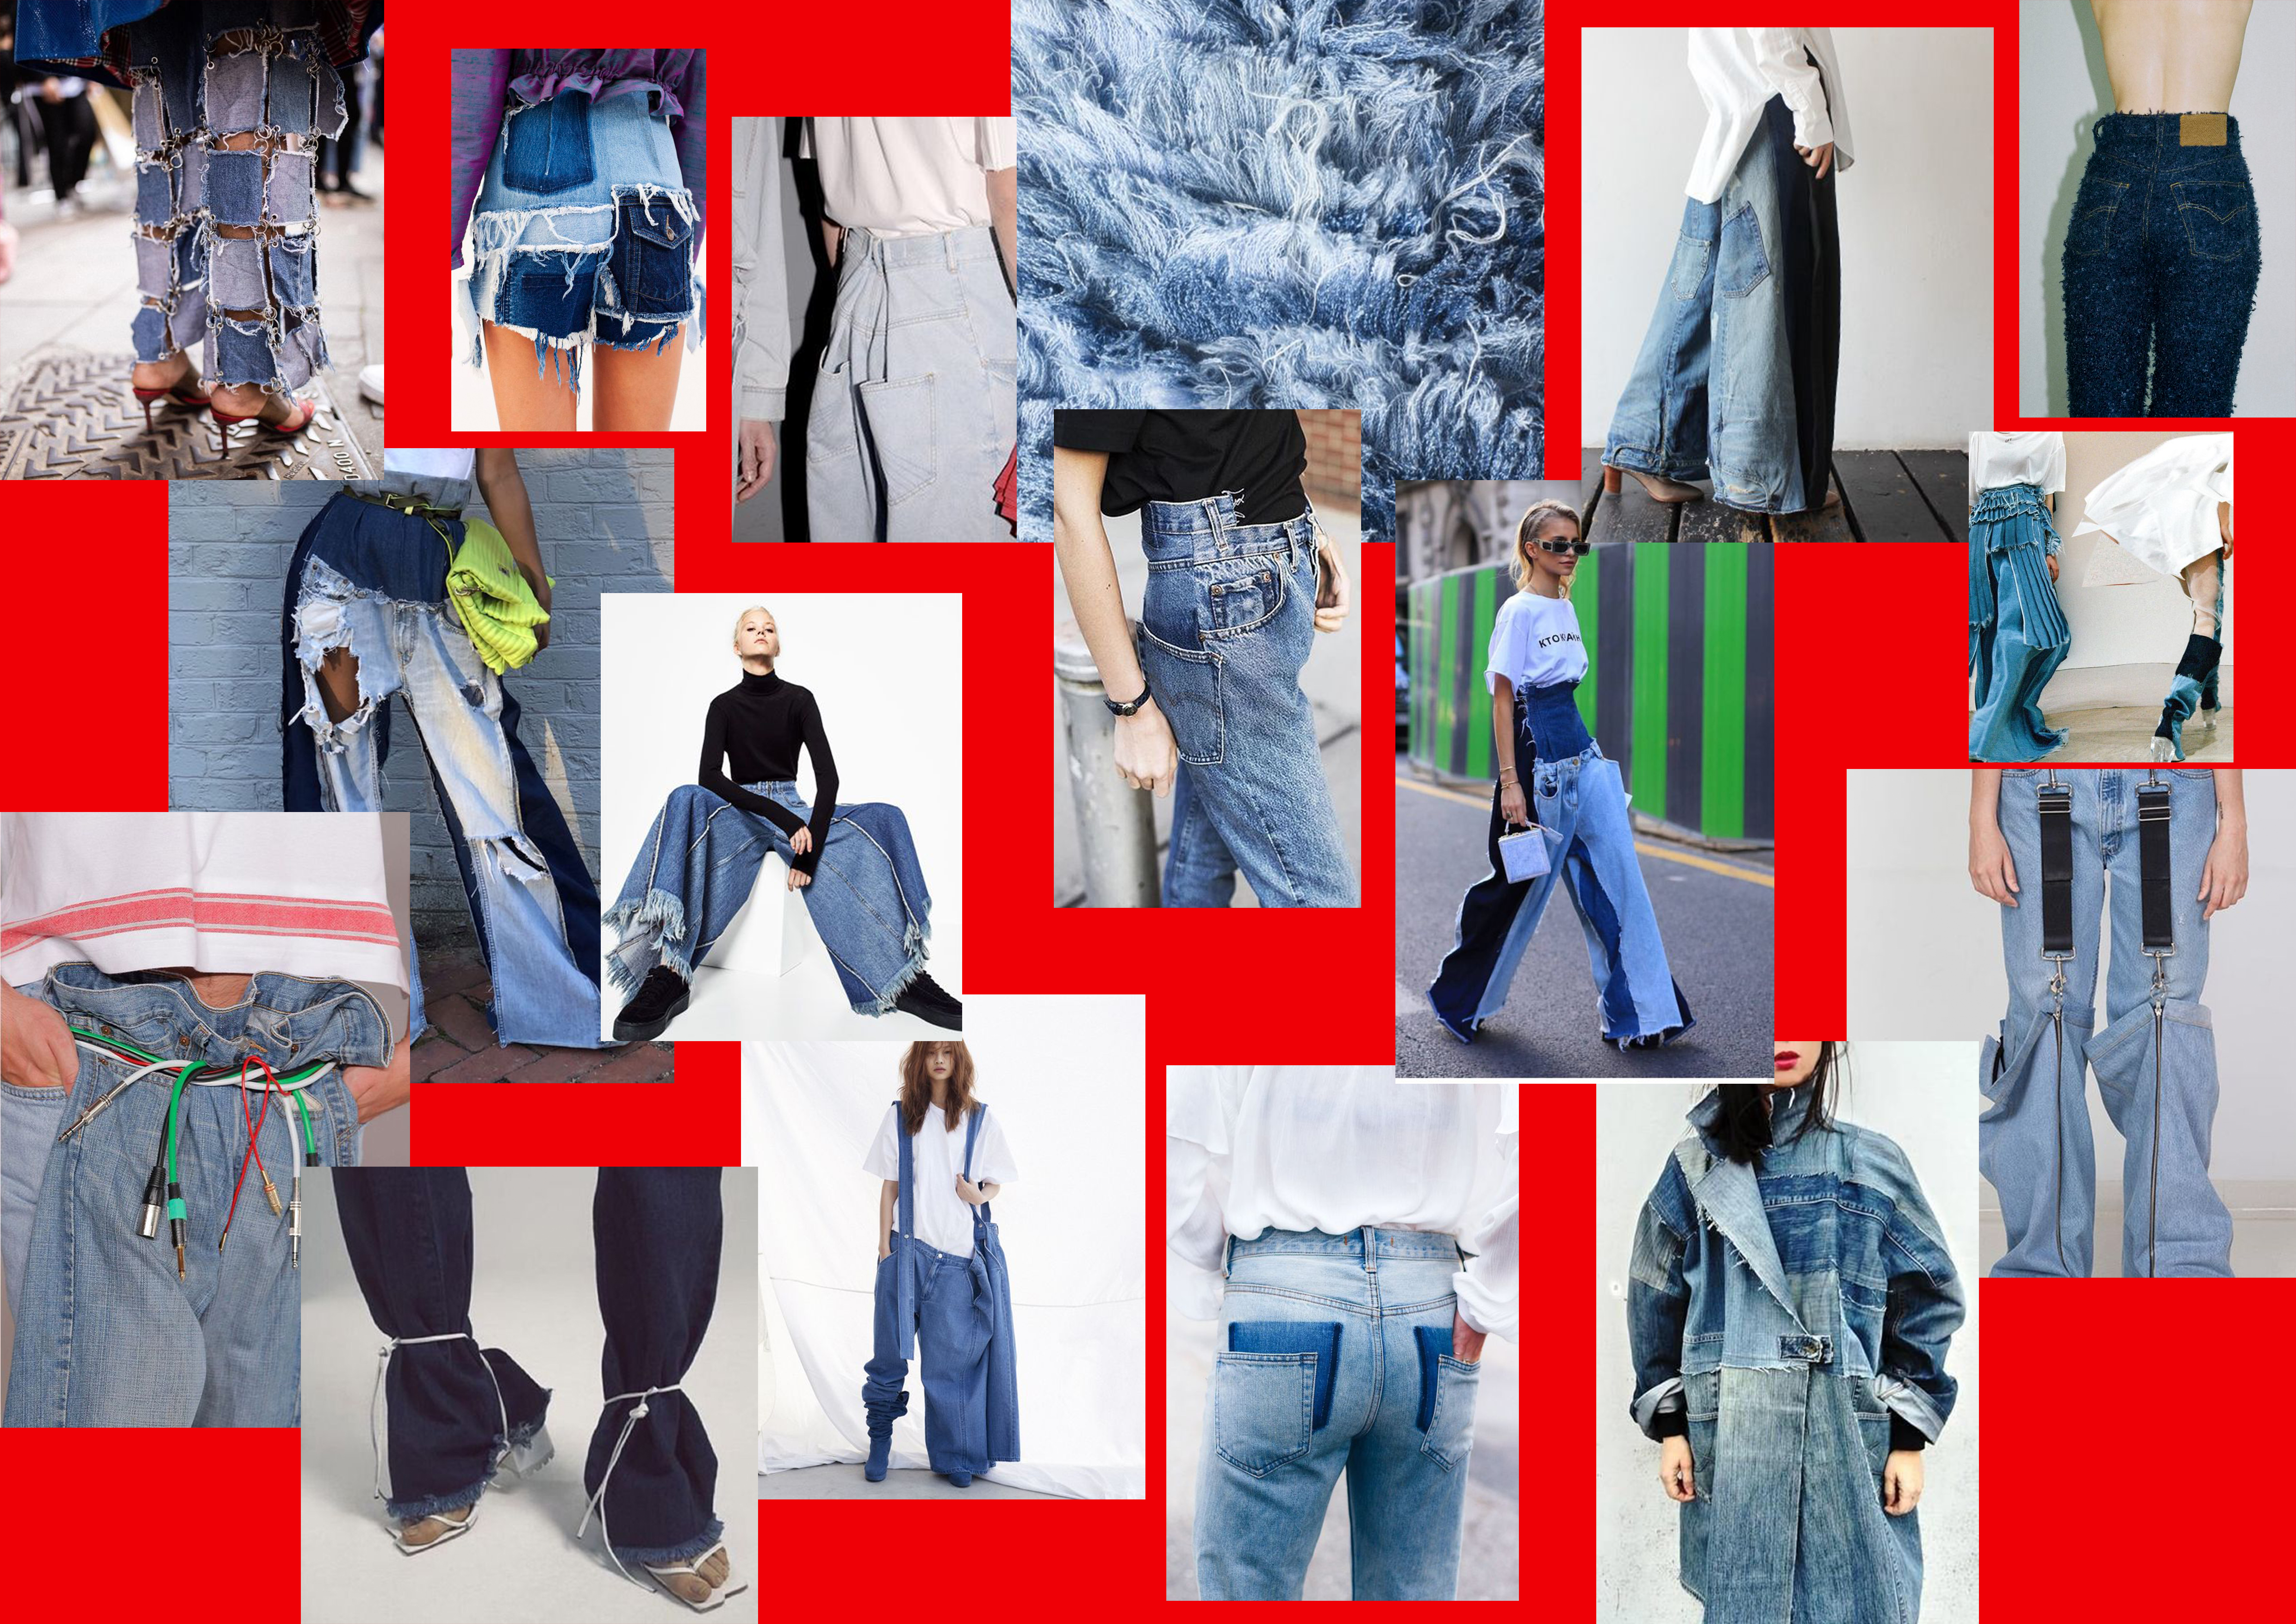 jeans re-use